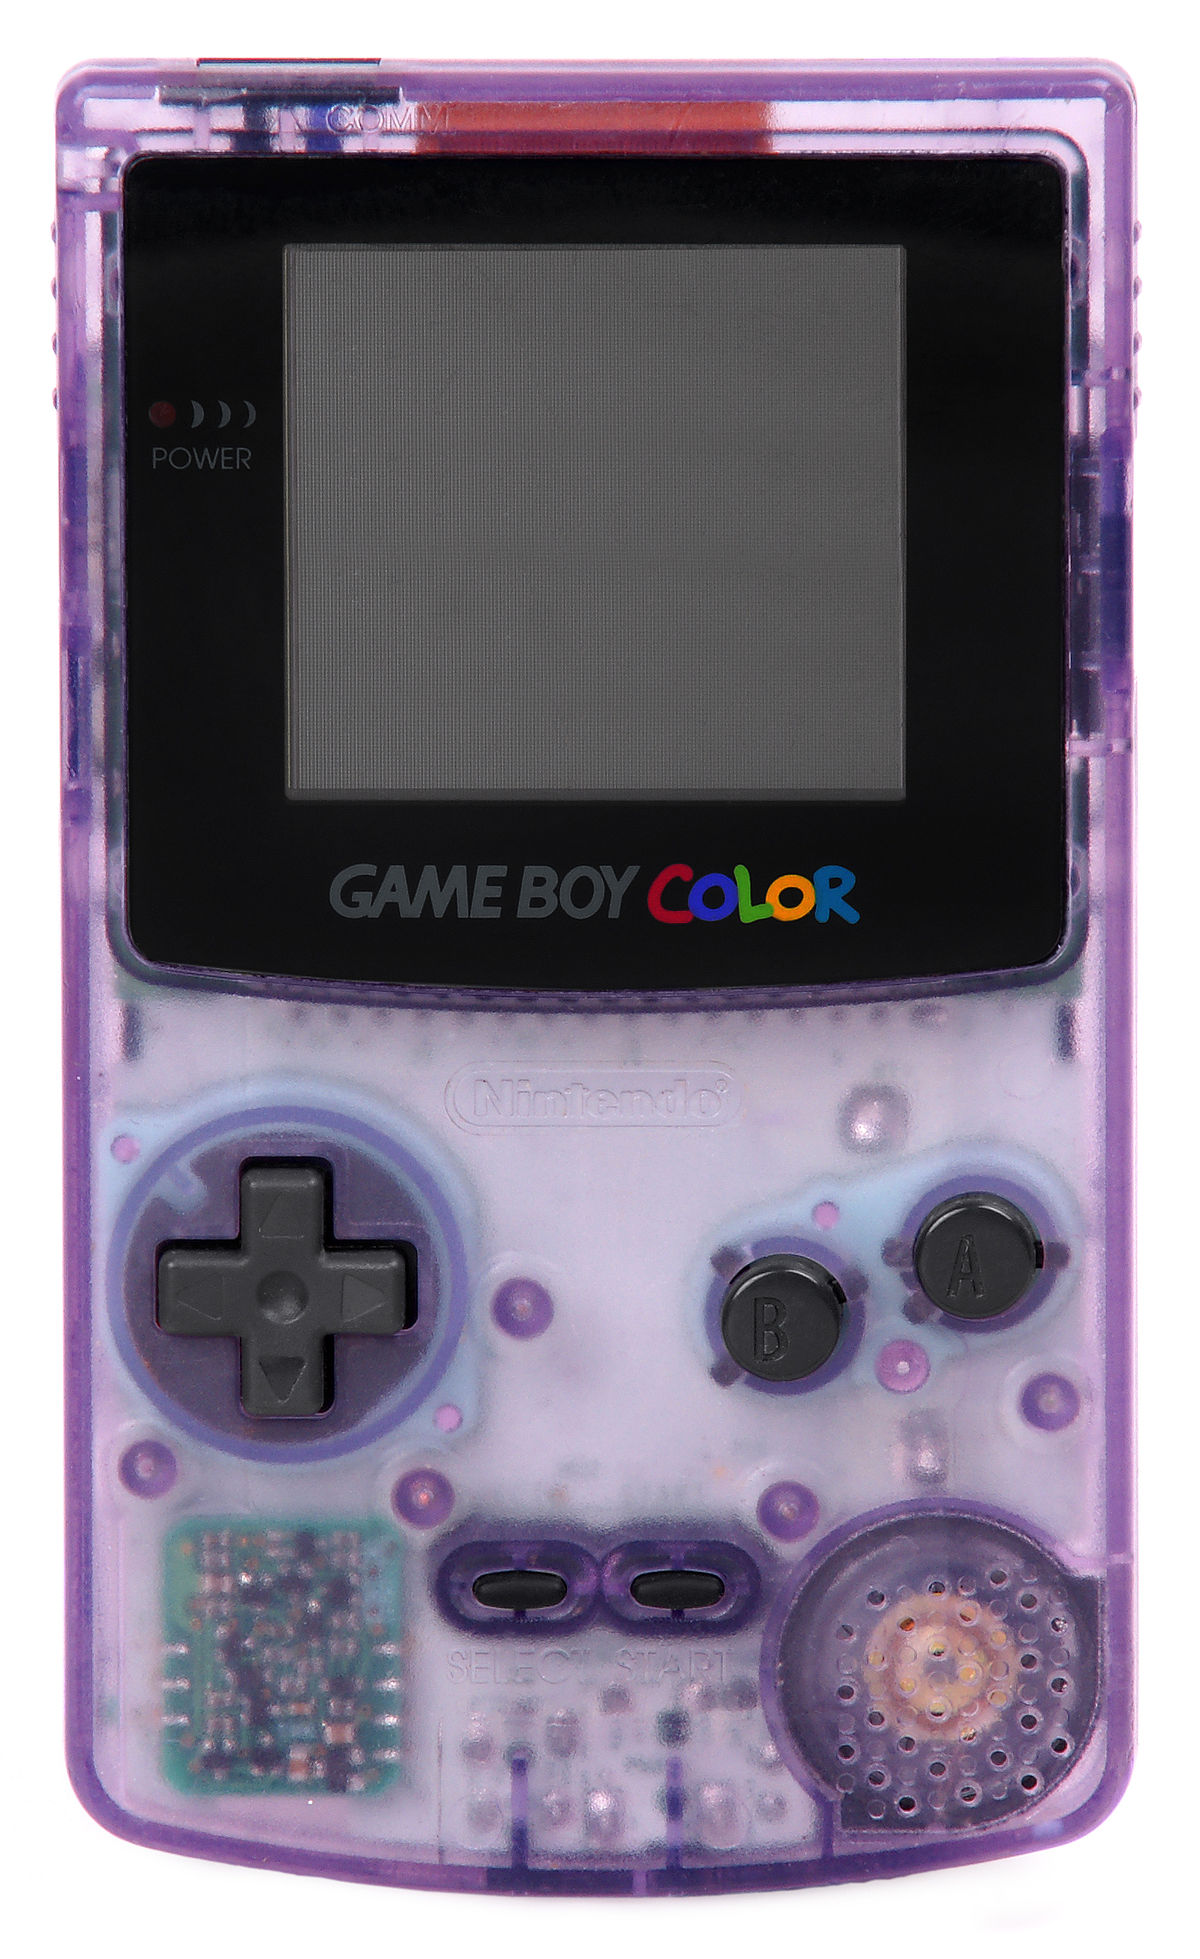 Game boy color quanto vale - Game Boy Color Quanto Vale 13